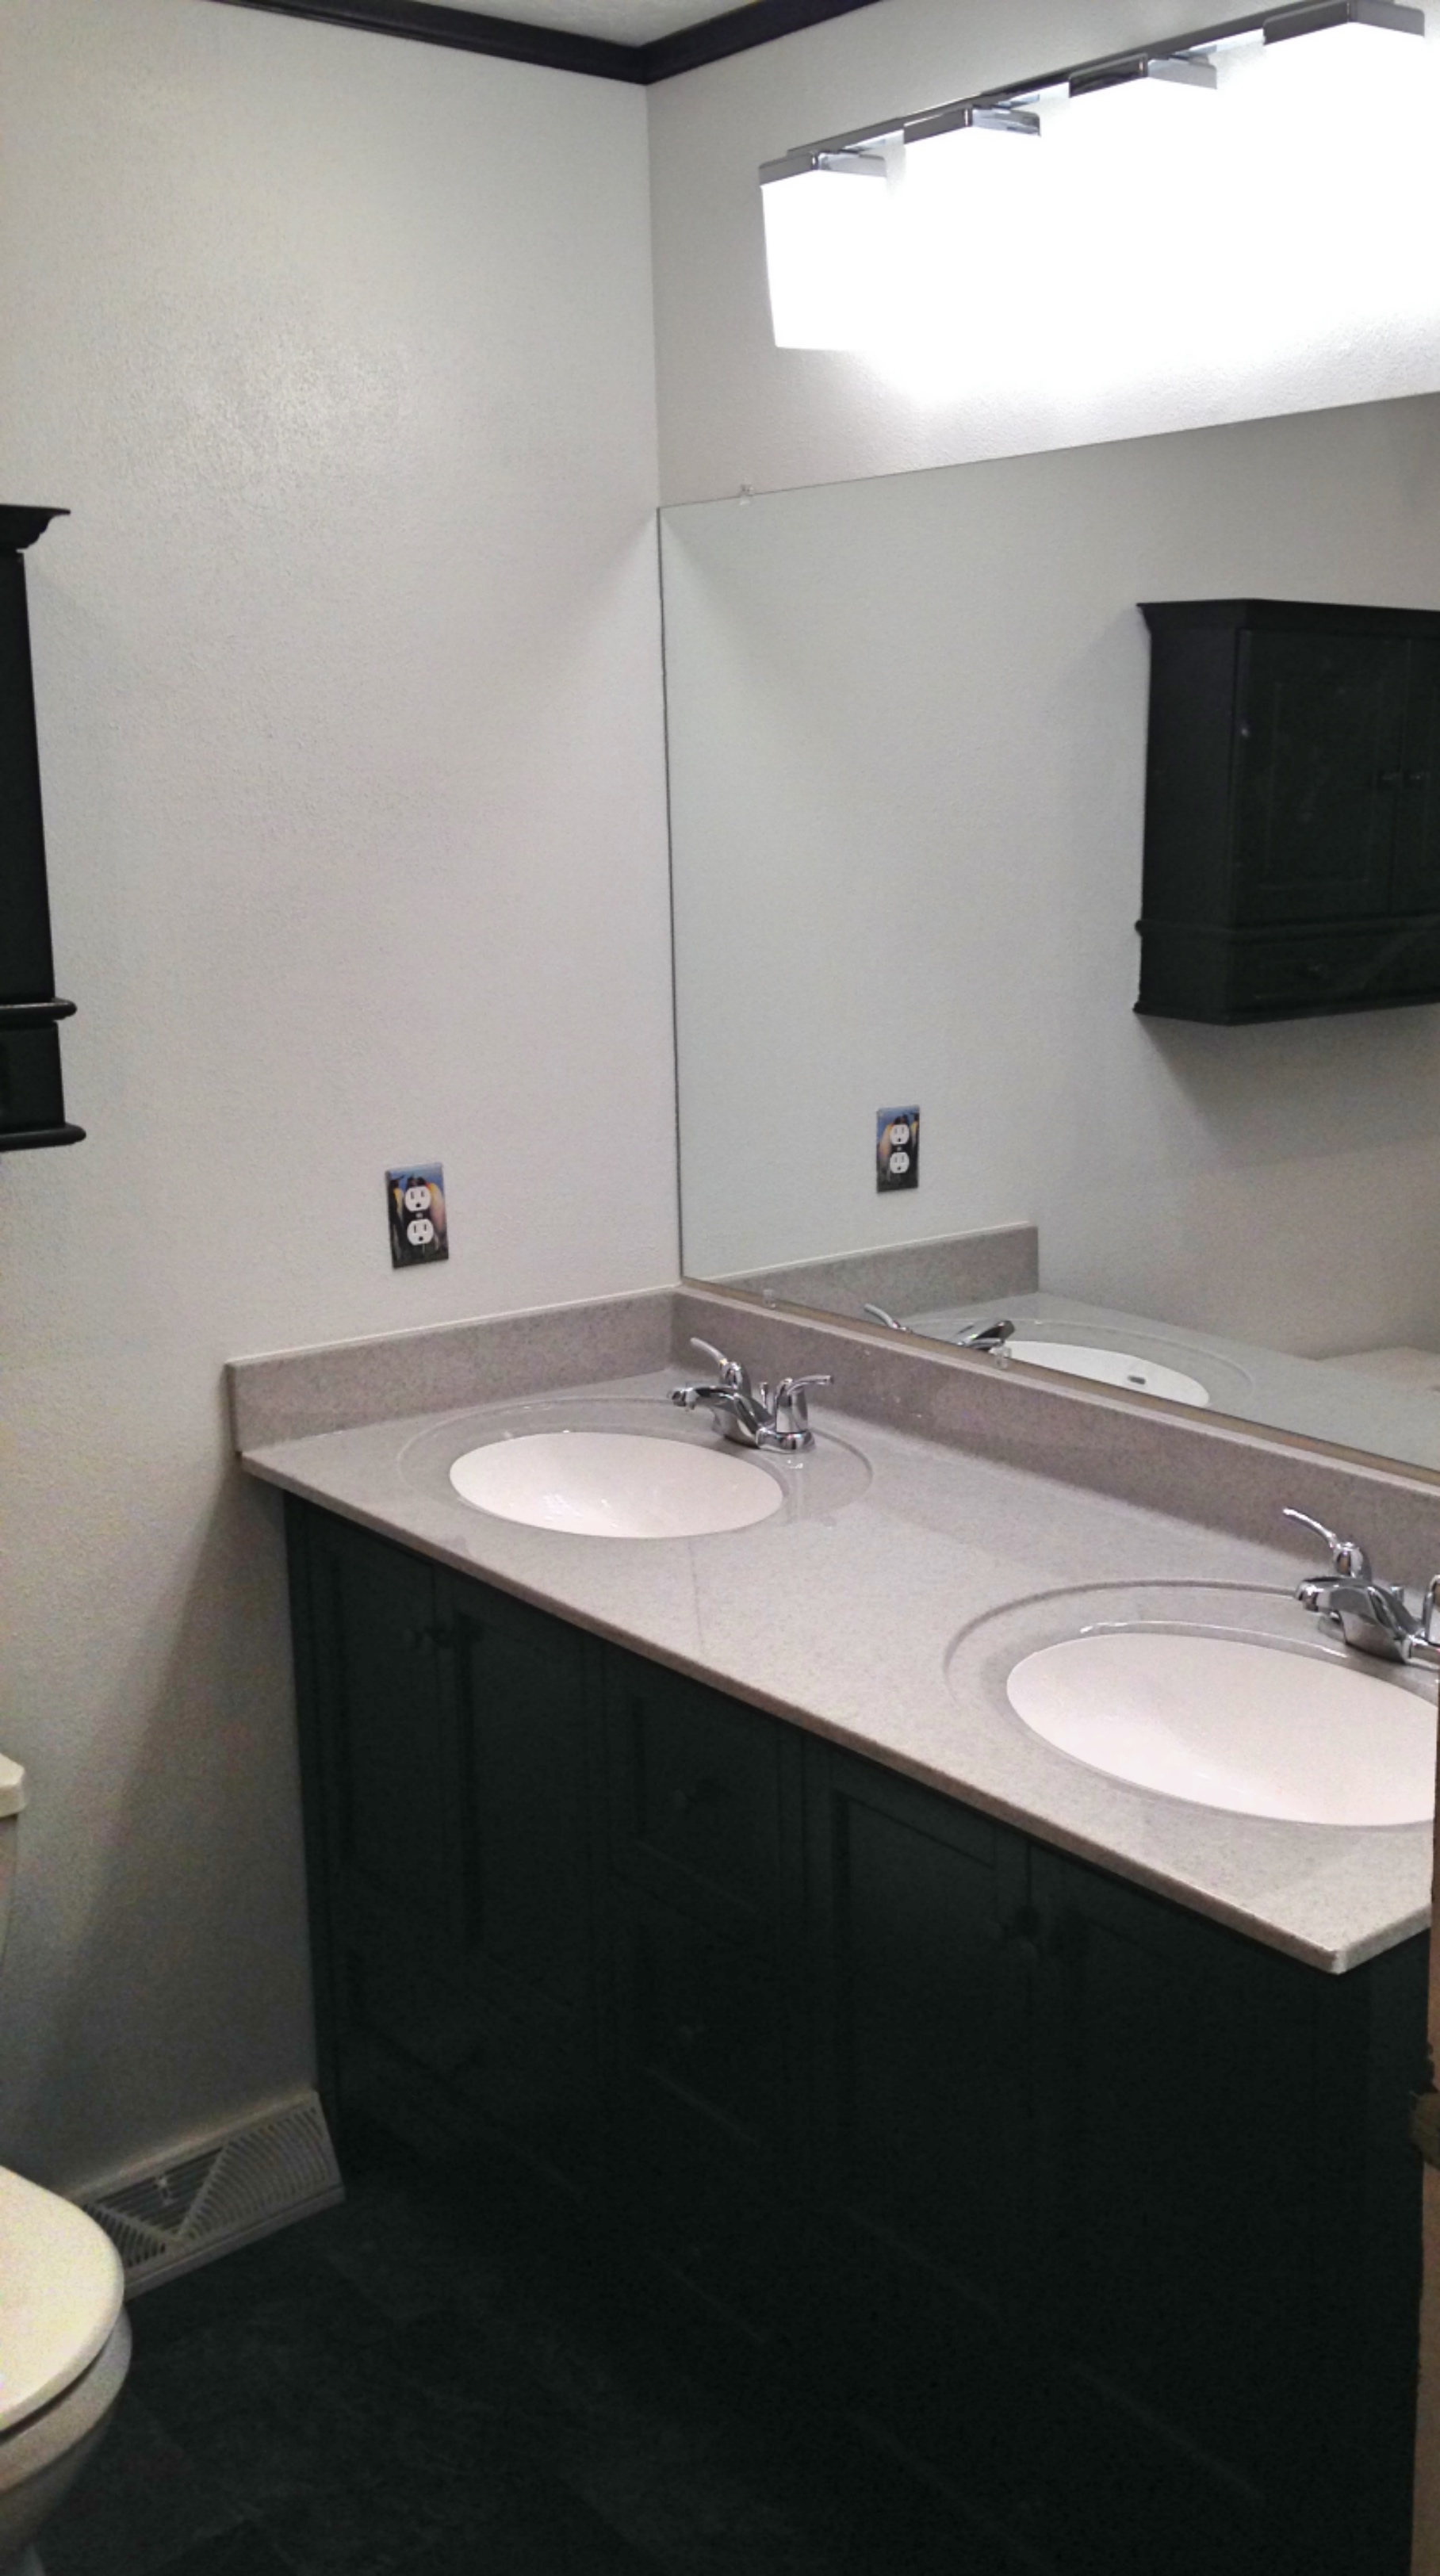 Bathroom Remodel North Ridgeville OH Quality Design - Bathroom remodeling cleveland ohio